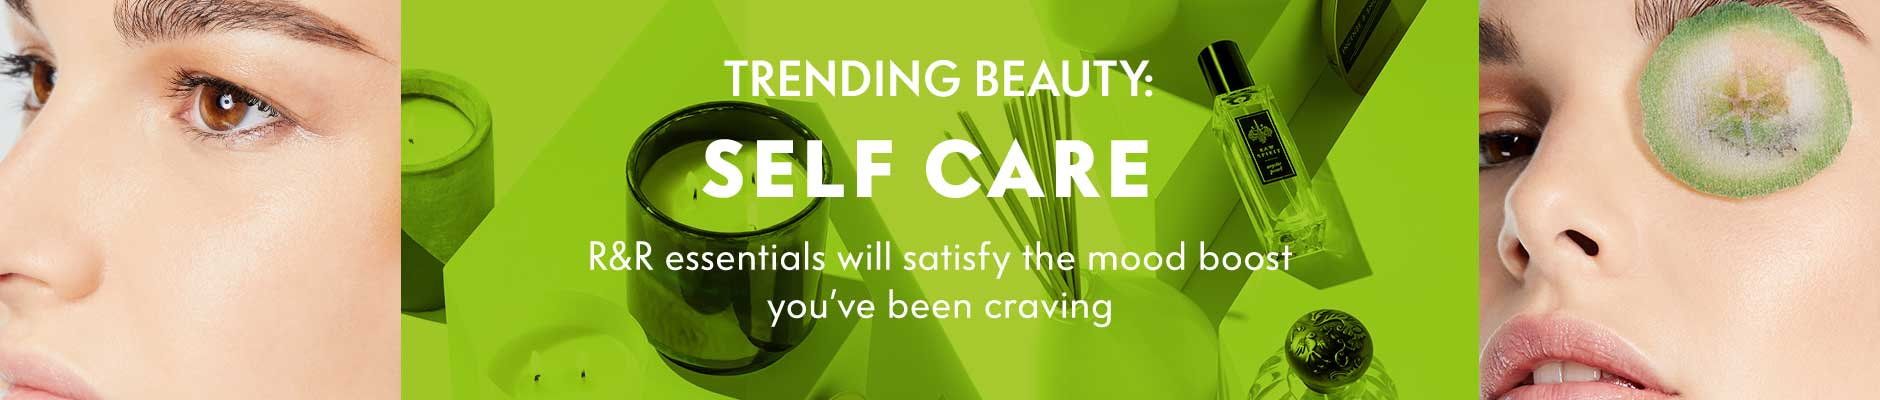 Trending Beauty: Self Care - New. Now. Next. R&R essentials will satisfy the mood boost you???ve been craving